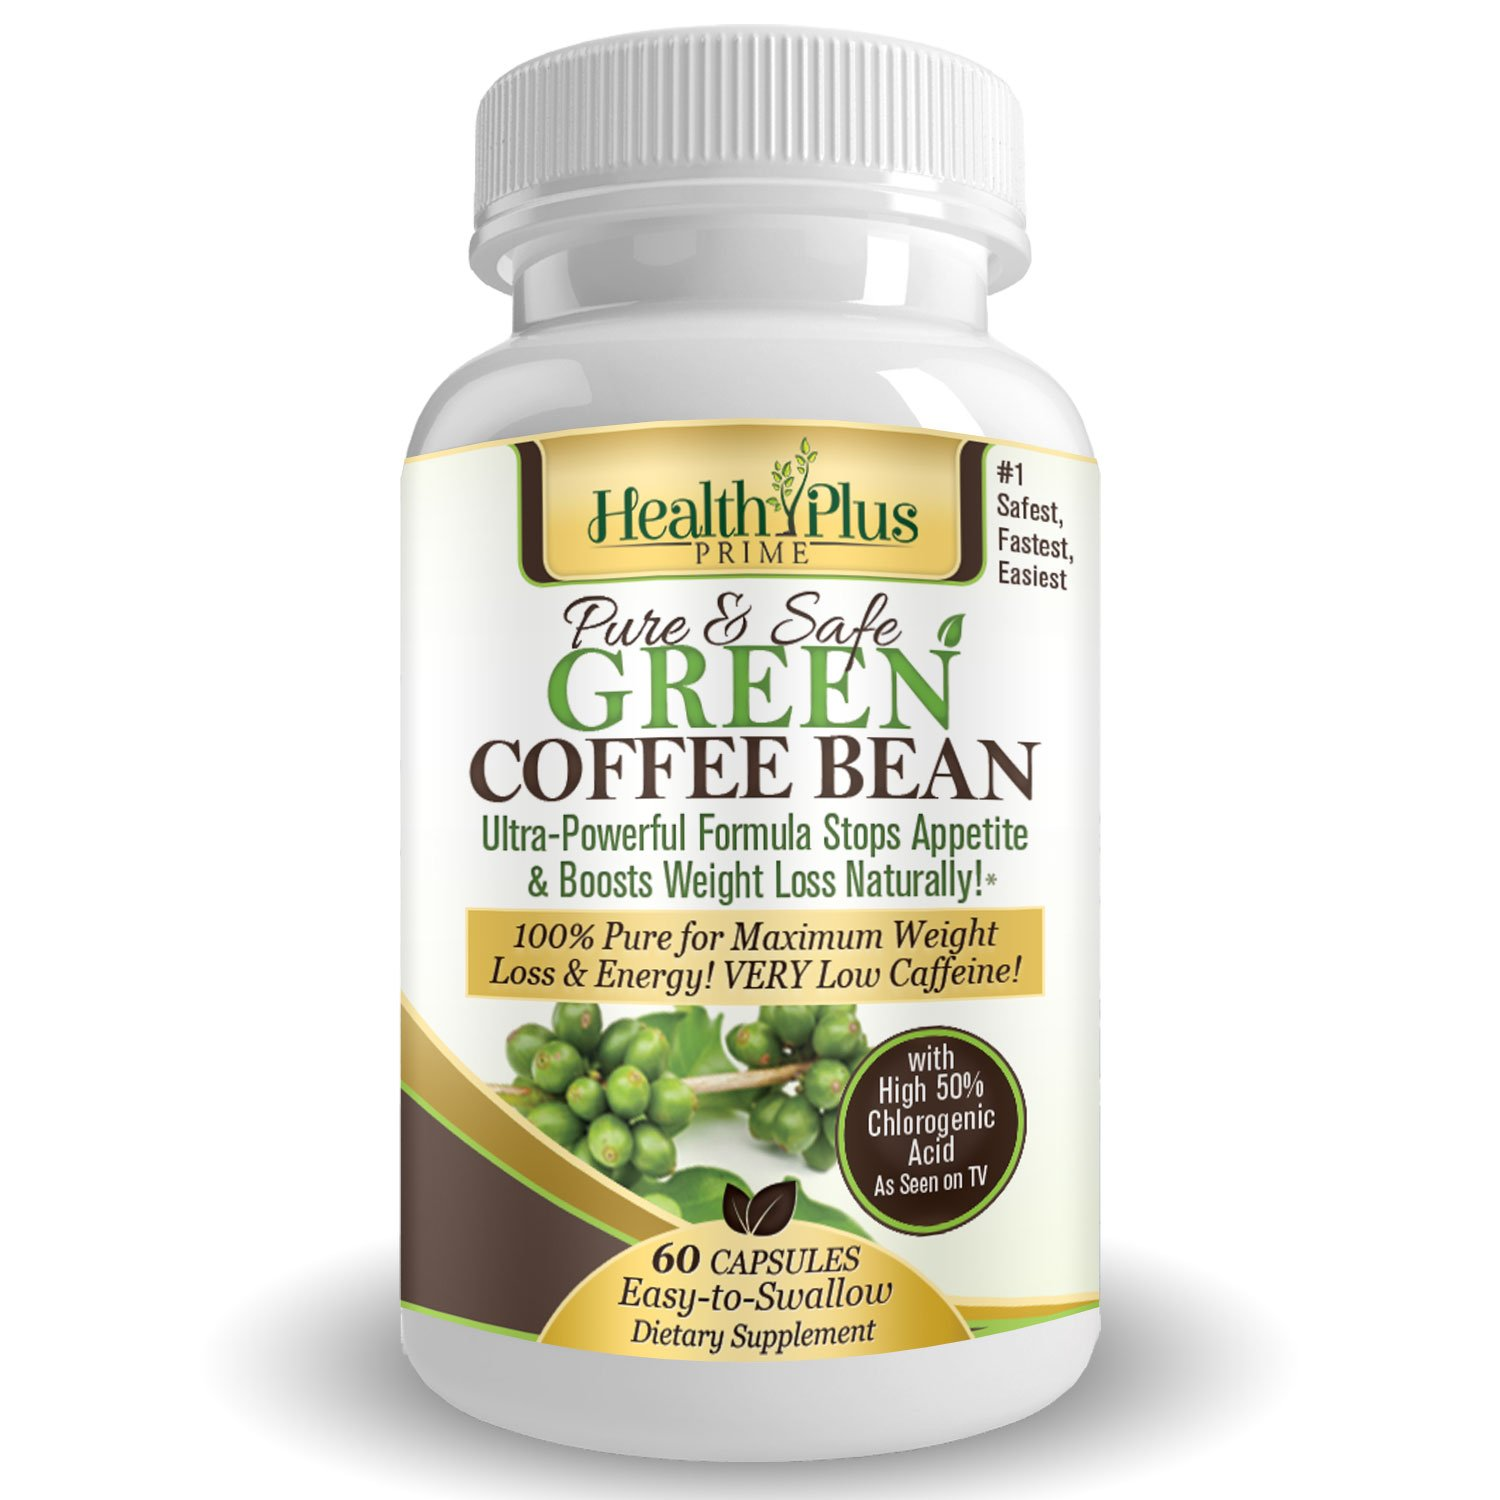 Health Plus Prime Green Coffee Bean Extract, All Natural Weight Loss Pills, Boost Metabolism and Regulate Blood Sugar, Max Strength 800 mg, Fat Burner Supplement for Women and Men, USA Made